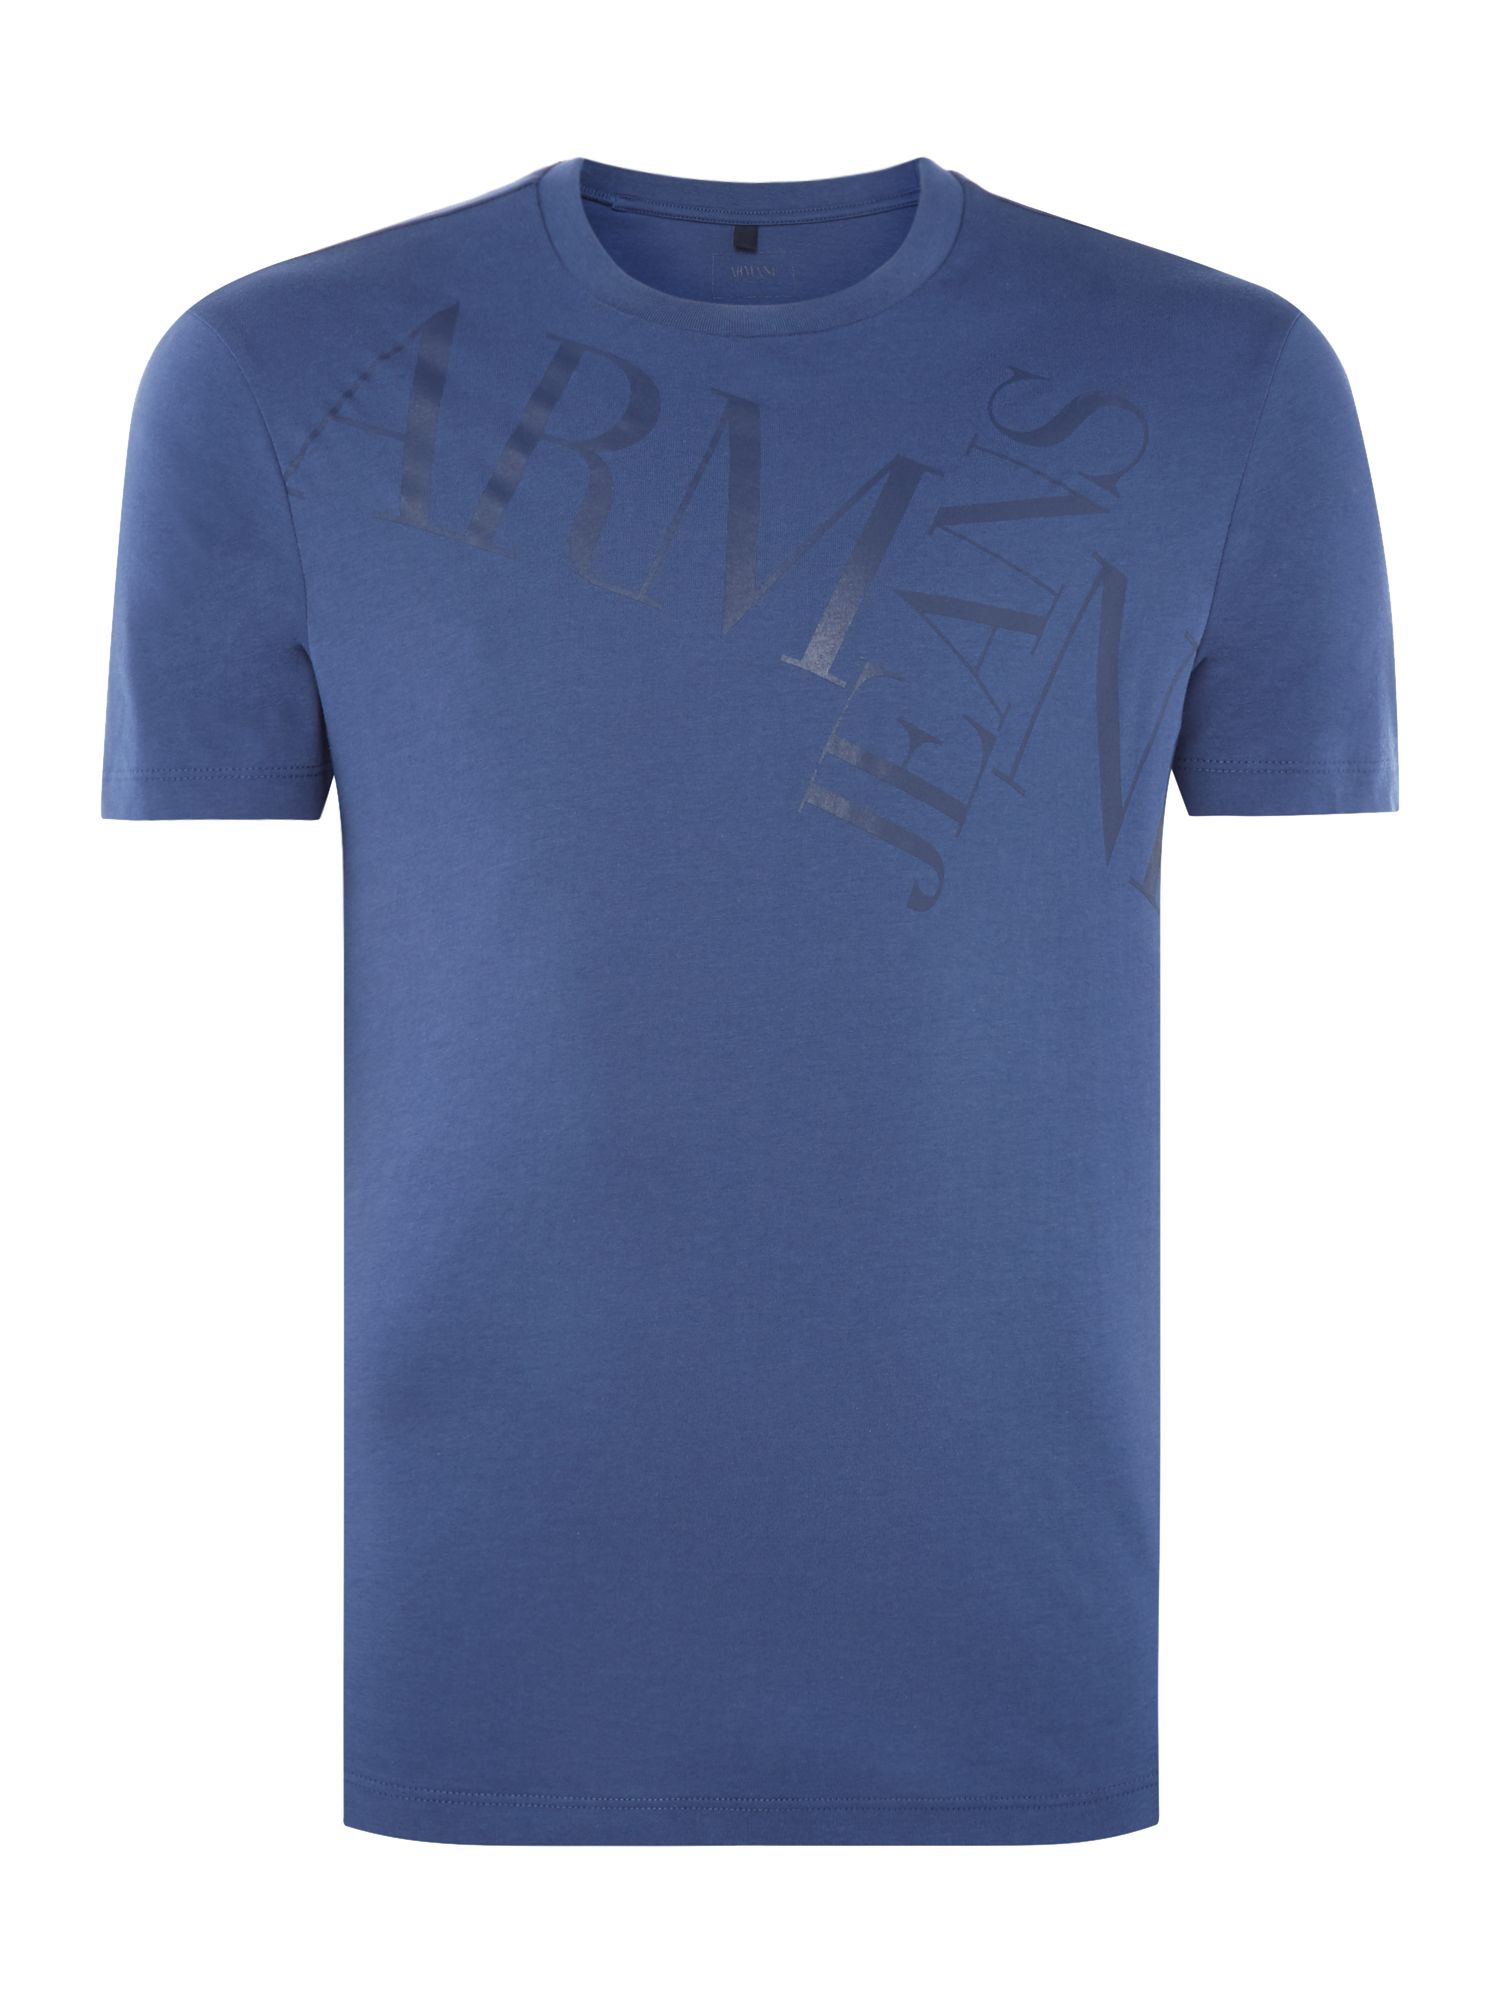 Men's Armani Jeans Armani Text Crew Neck T-Shirt, Blue